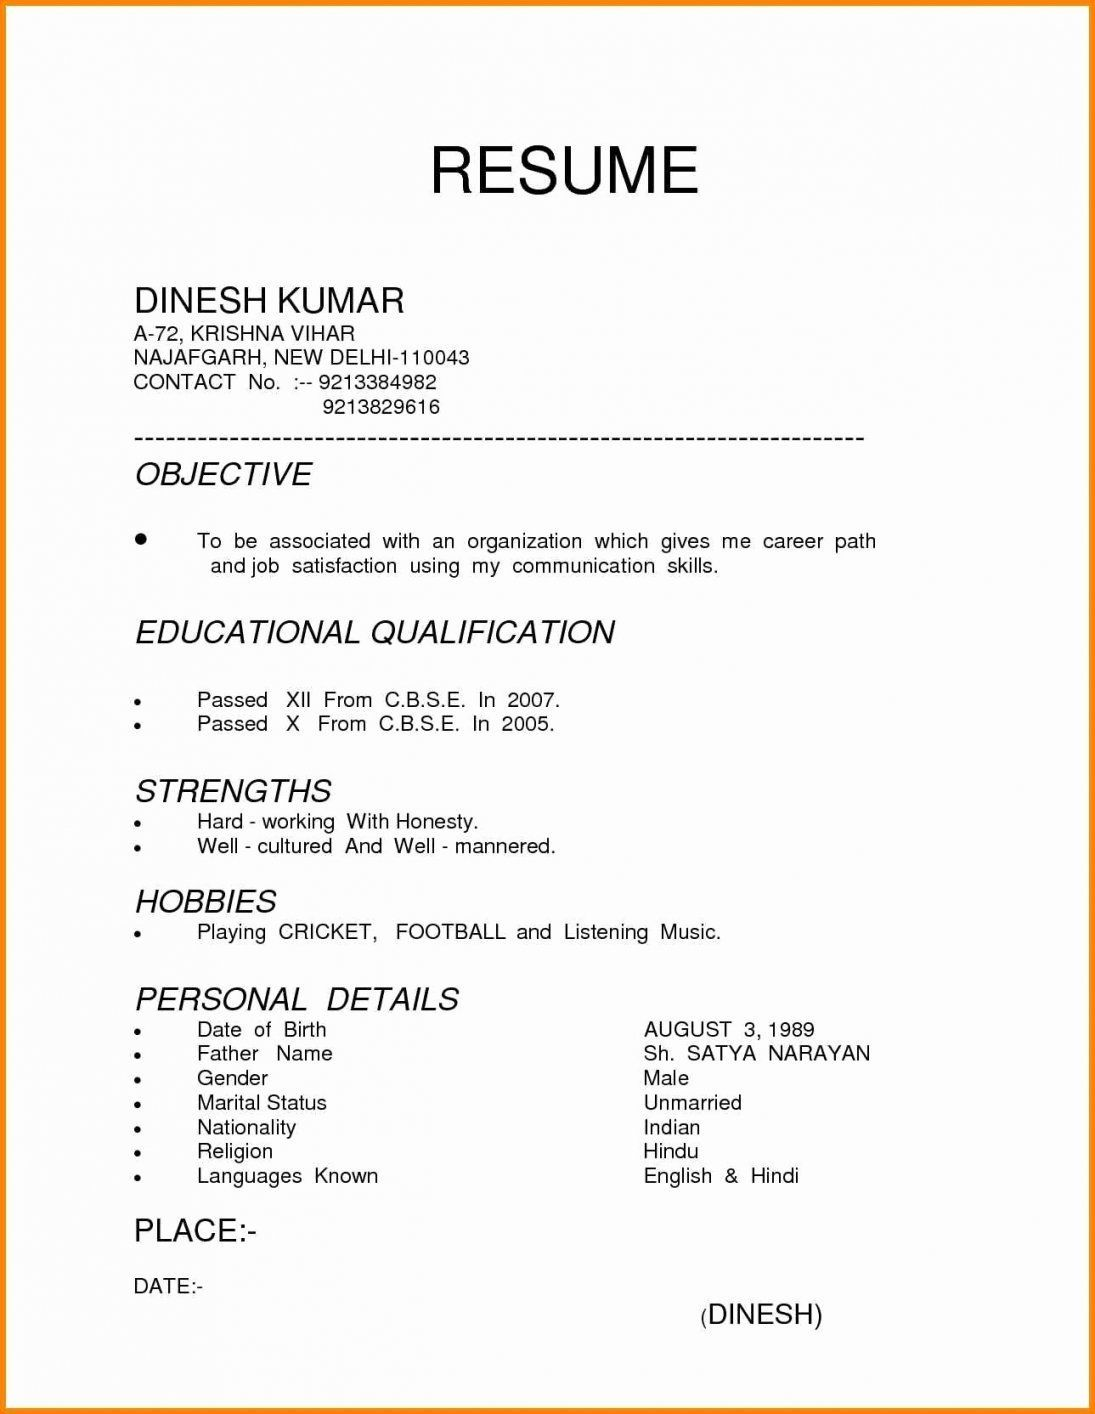 Resume Format Examples Resume Format Types Of Resumes Resume Format Download Resume Examples Simple Resume Format Resume Format Examples Resume Format Download Best Resume Format